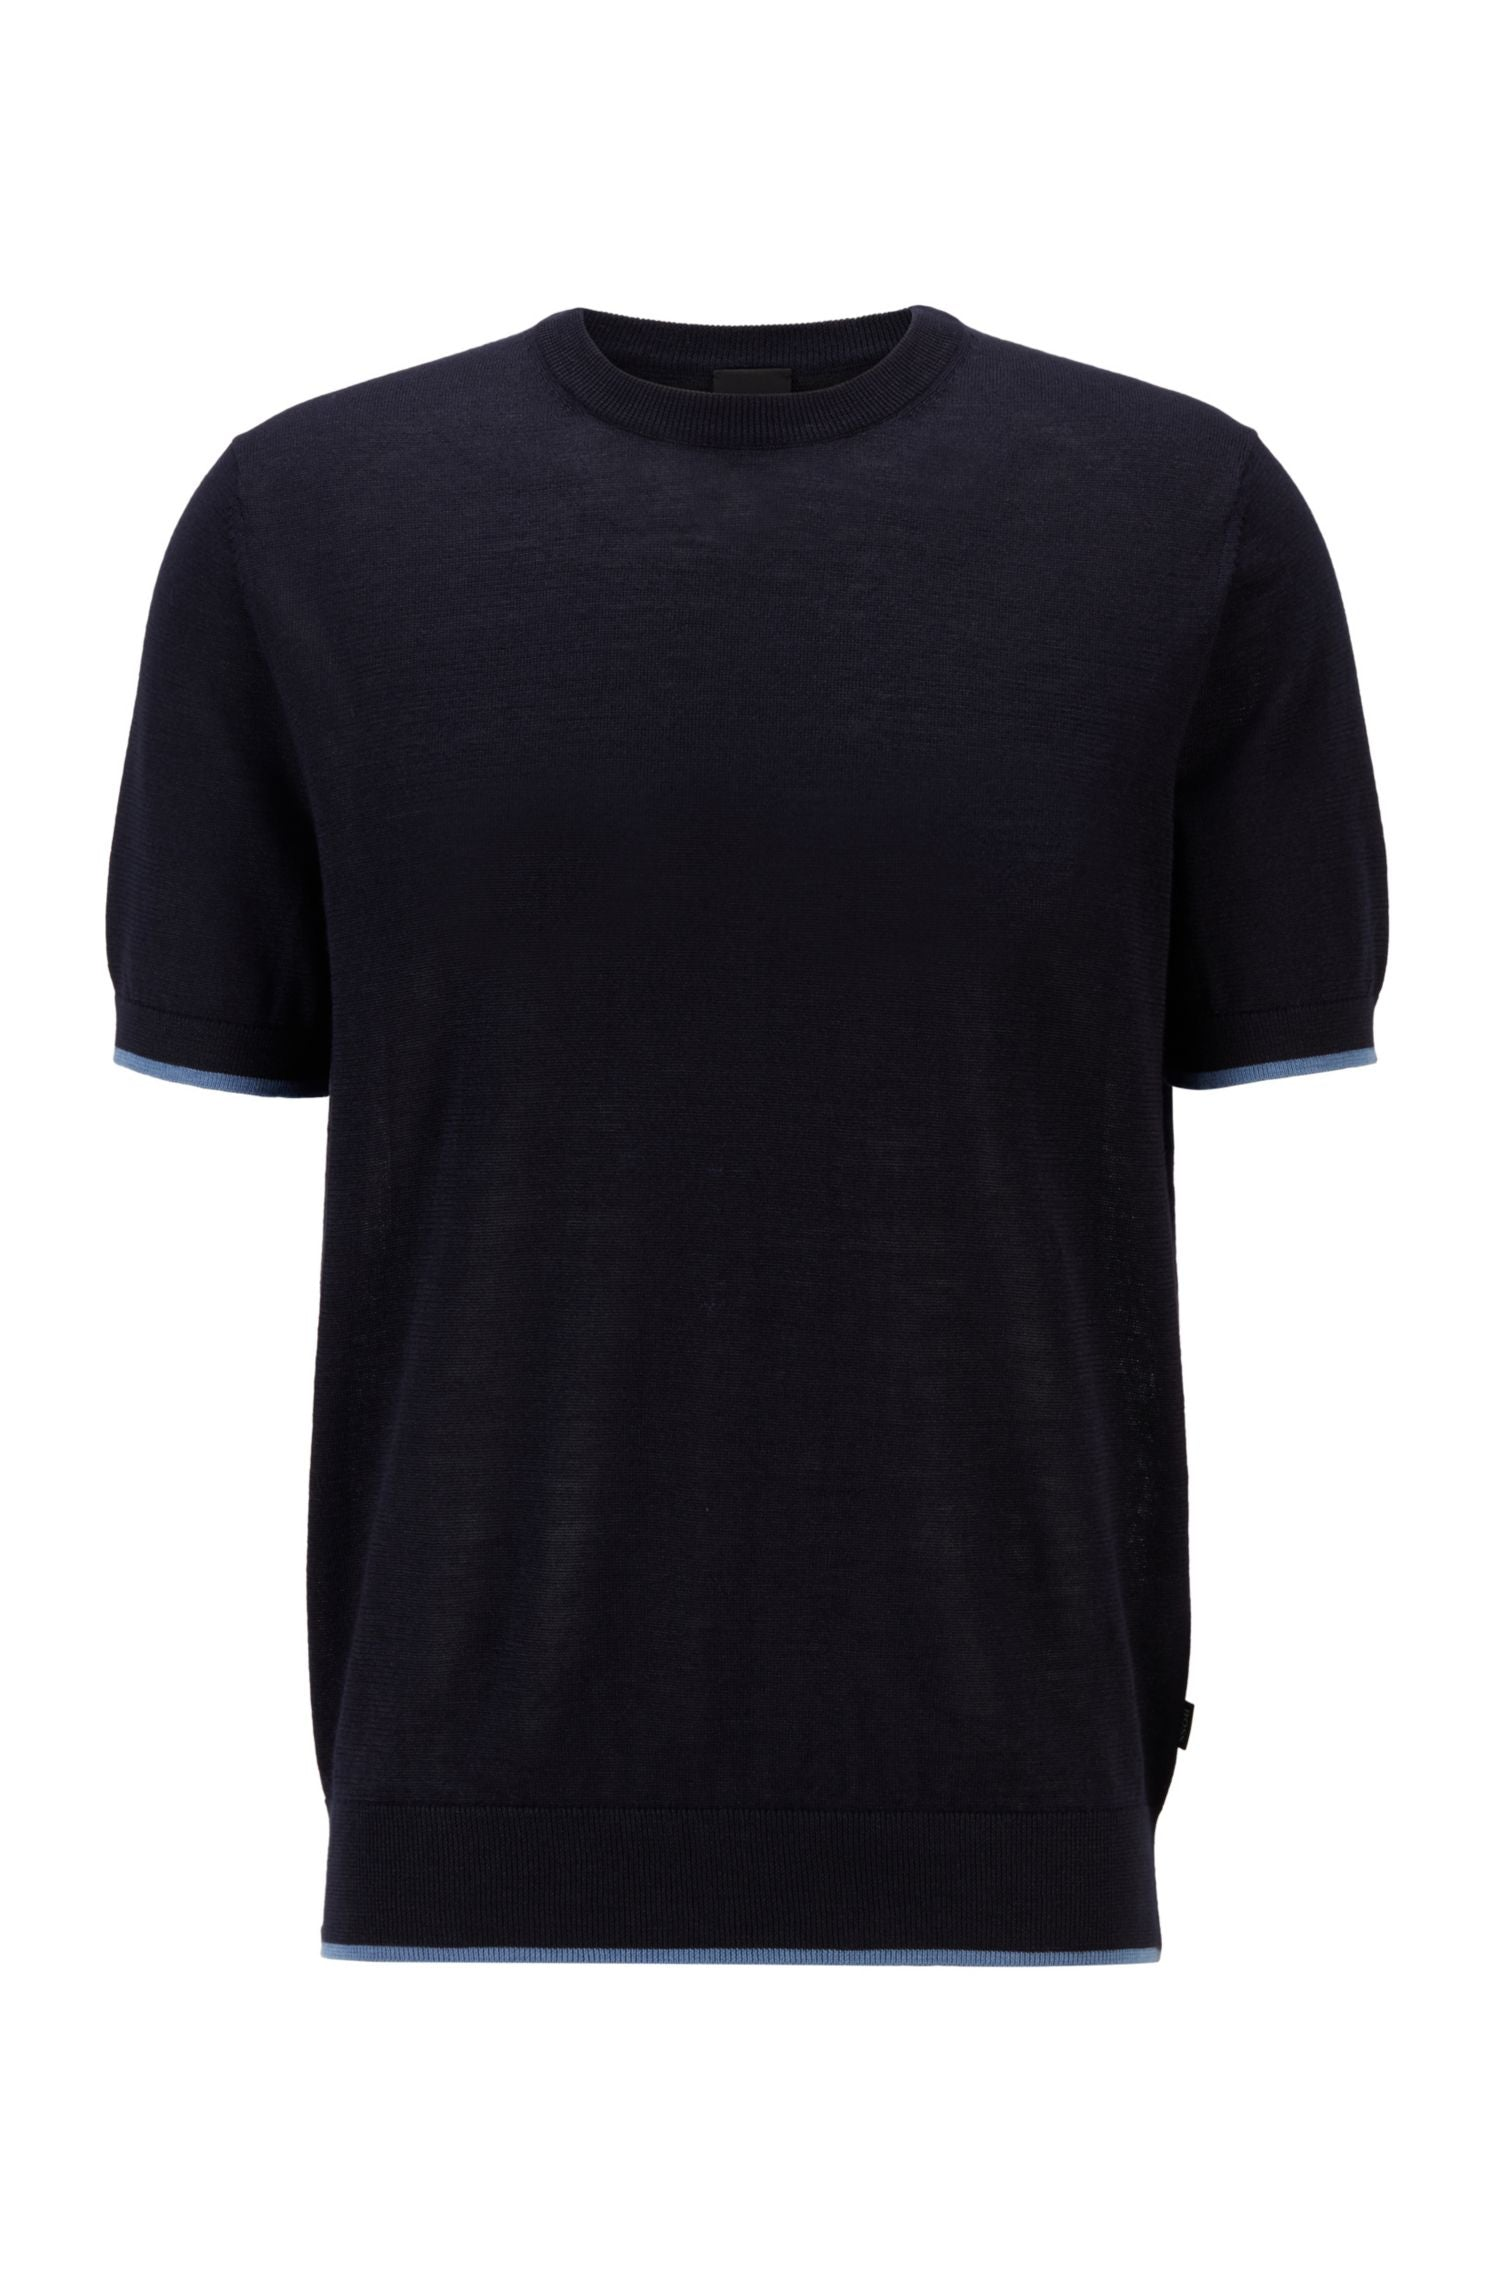 Hugo Boss - PERSIMO Dark Blue Short Sleeves Sweater Tee in Ramie and Cotton Blend 50449960